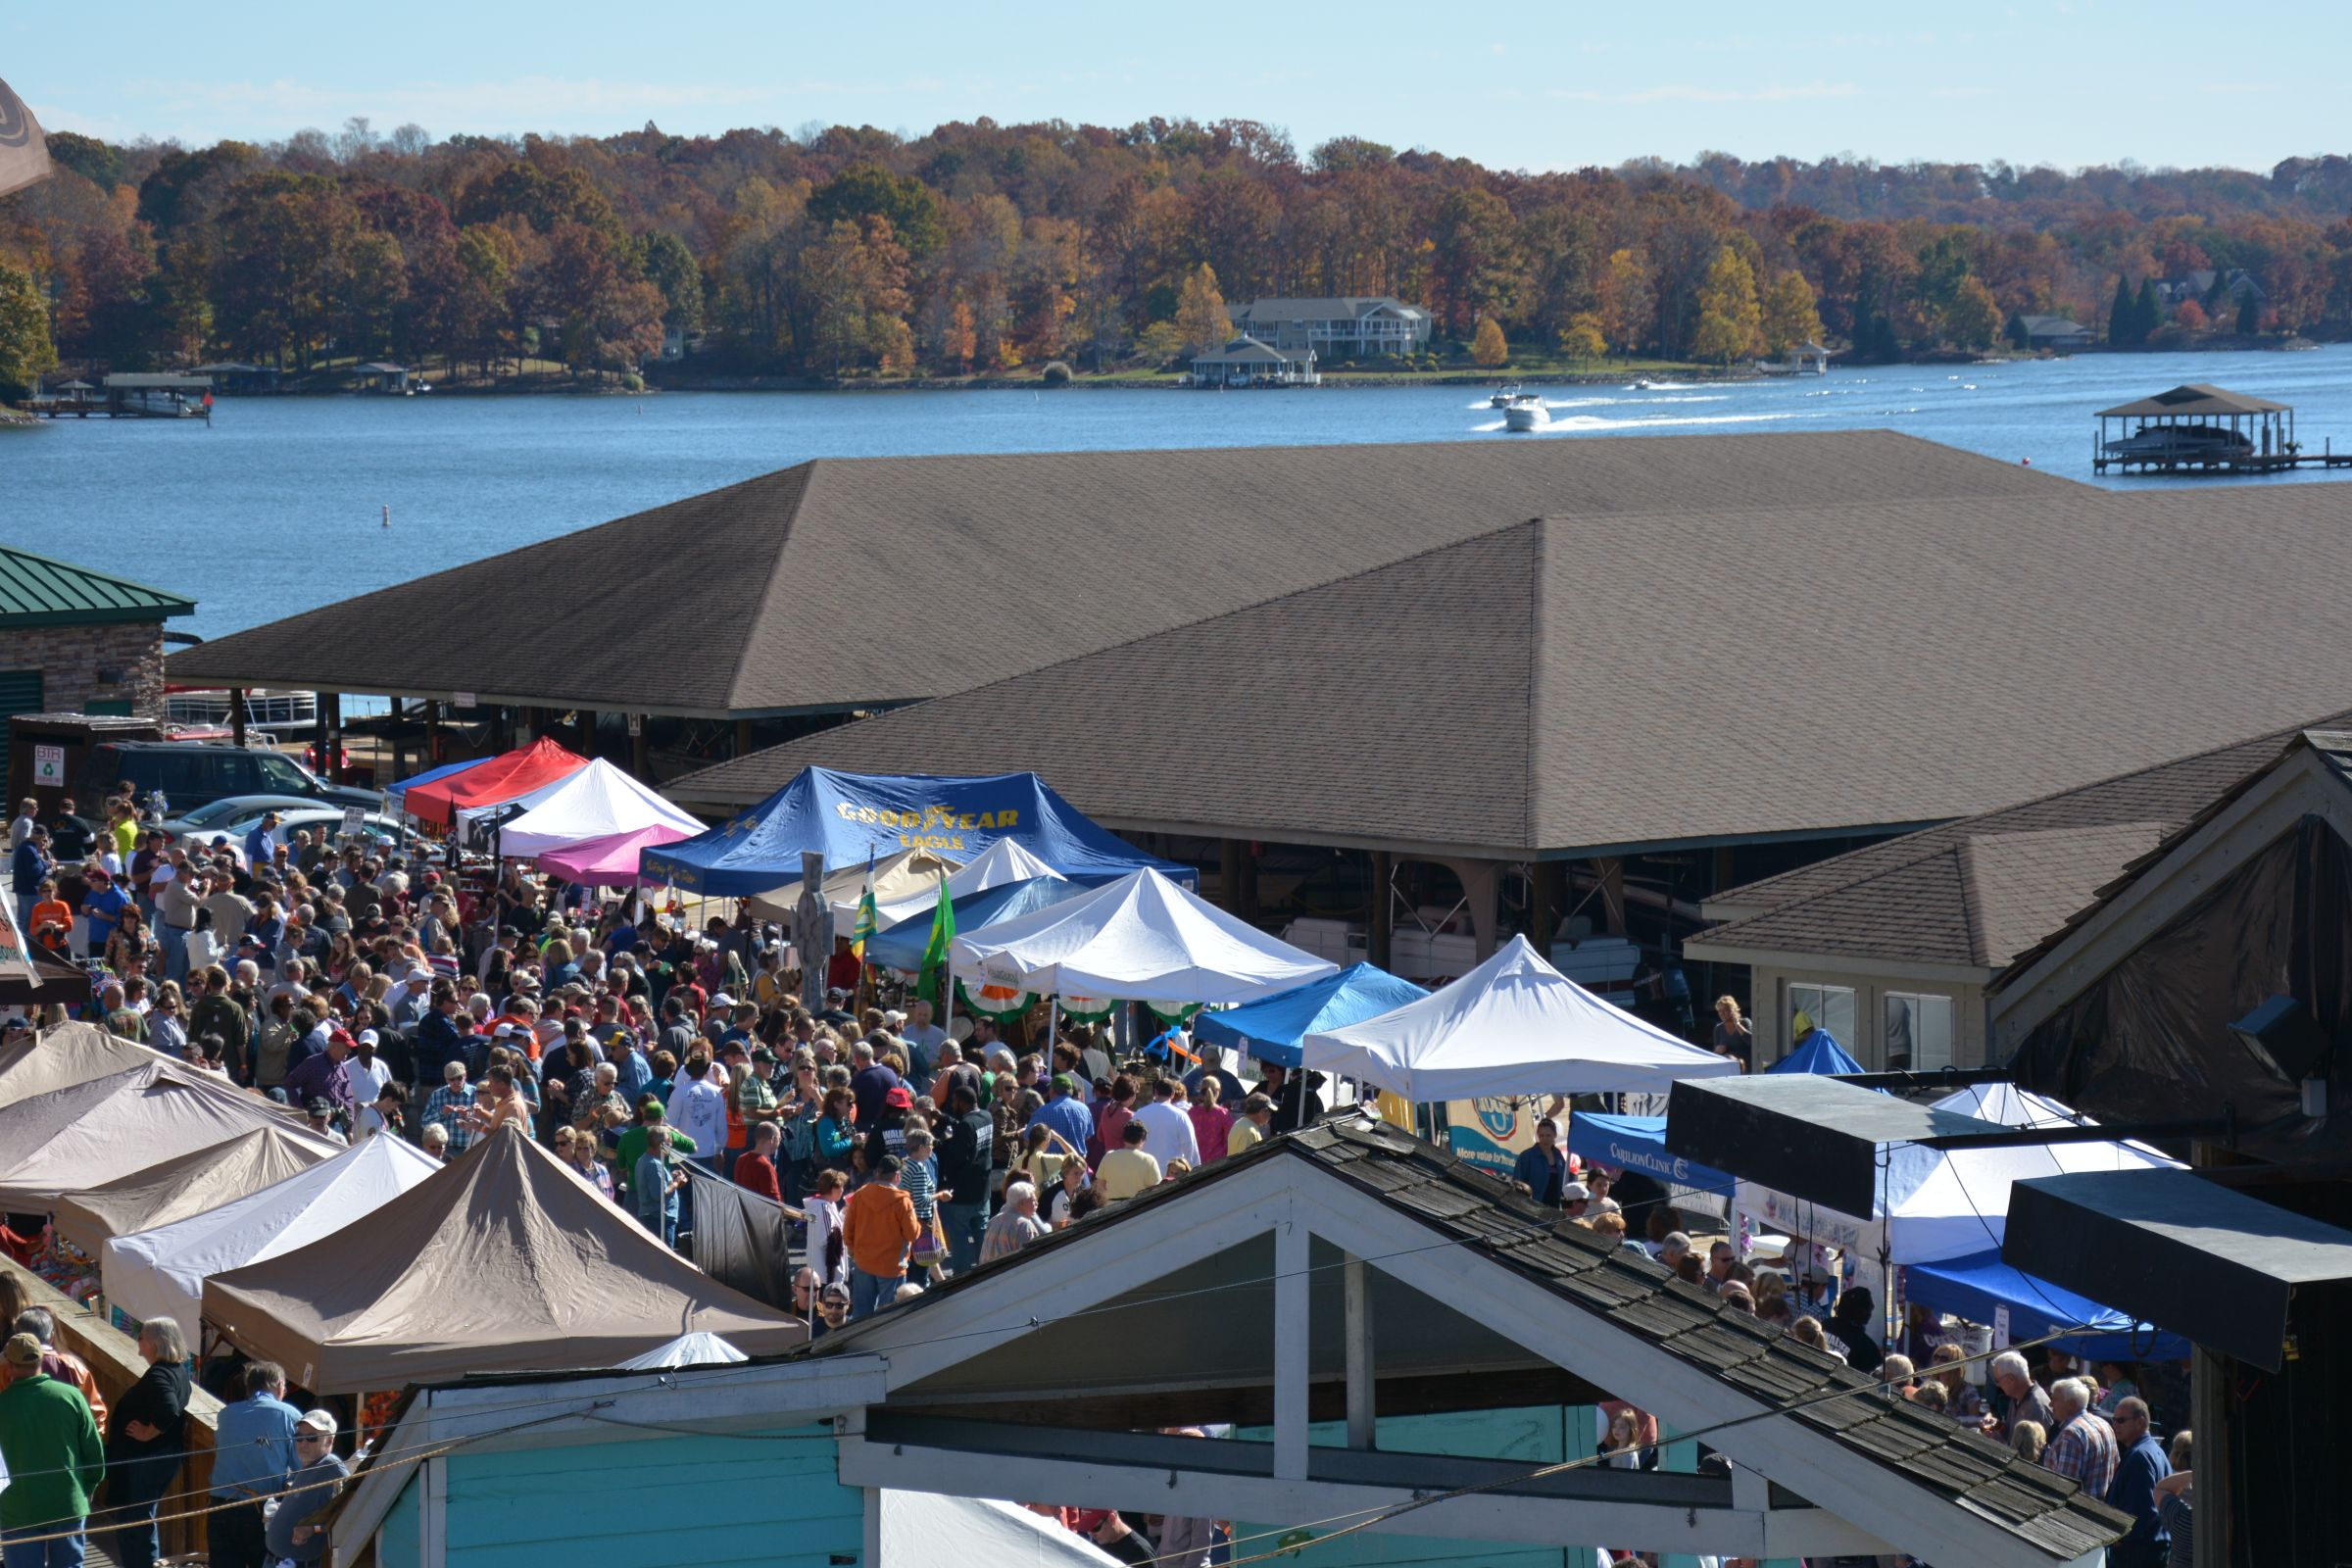 Chili Festival facing lake